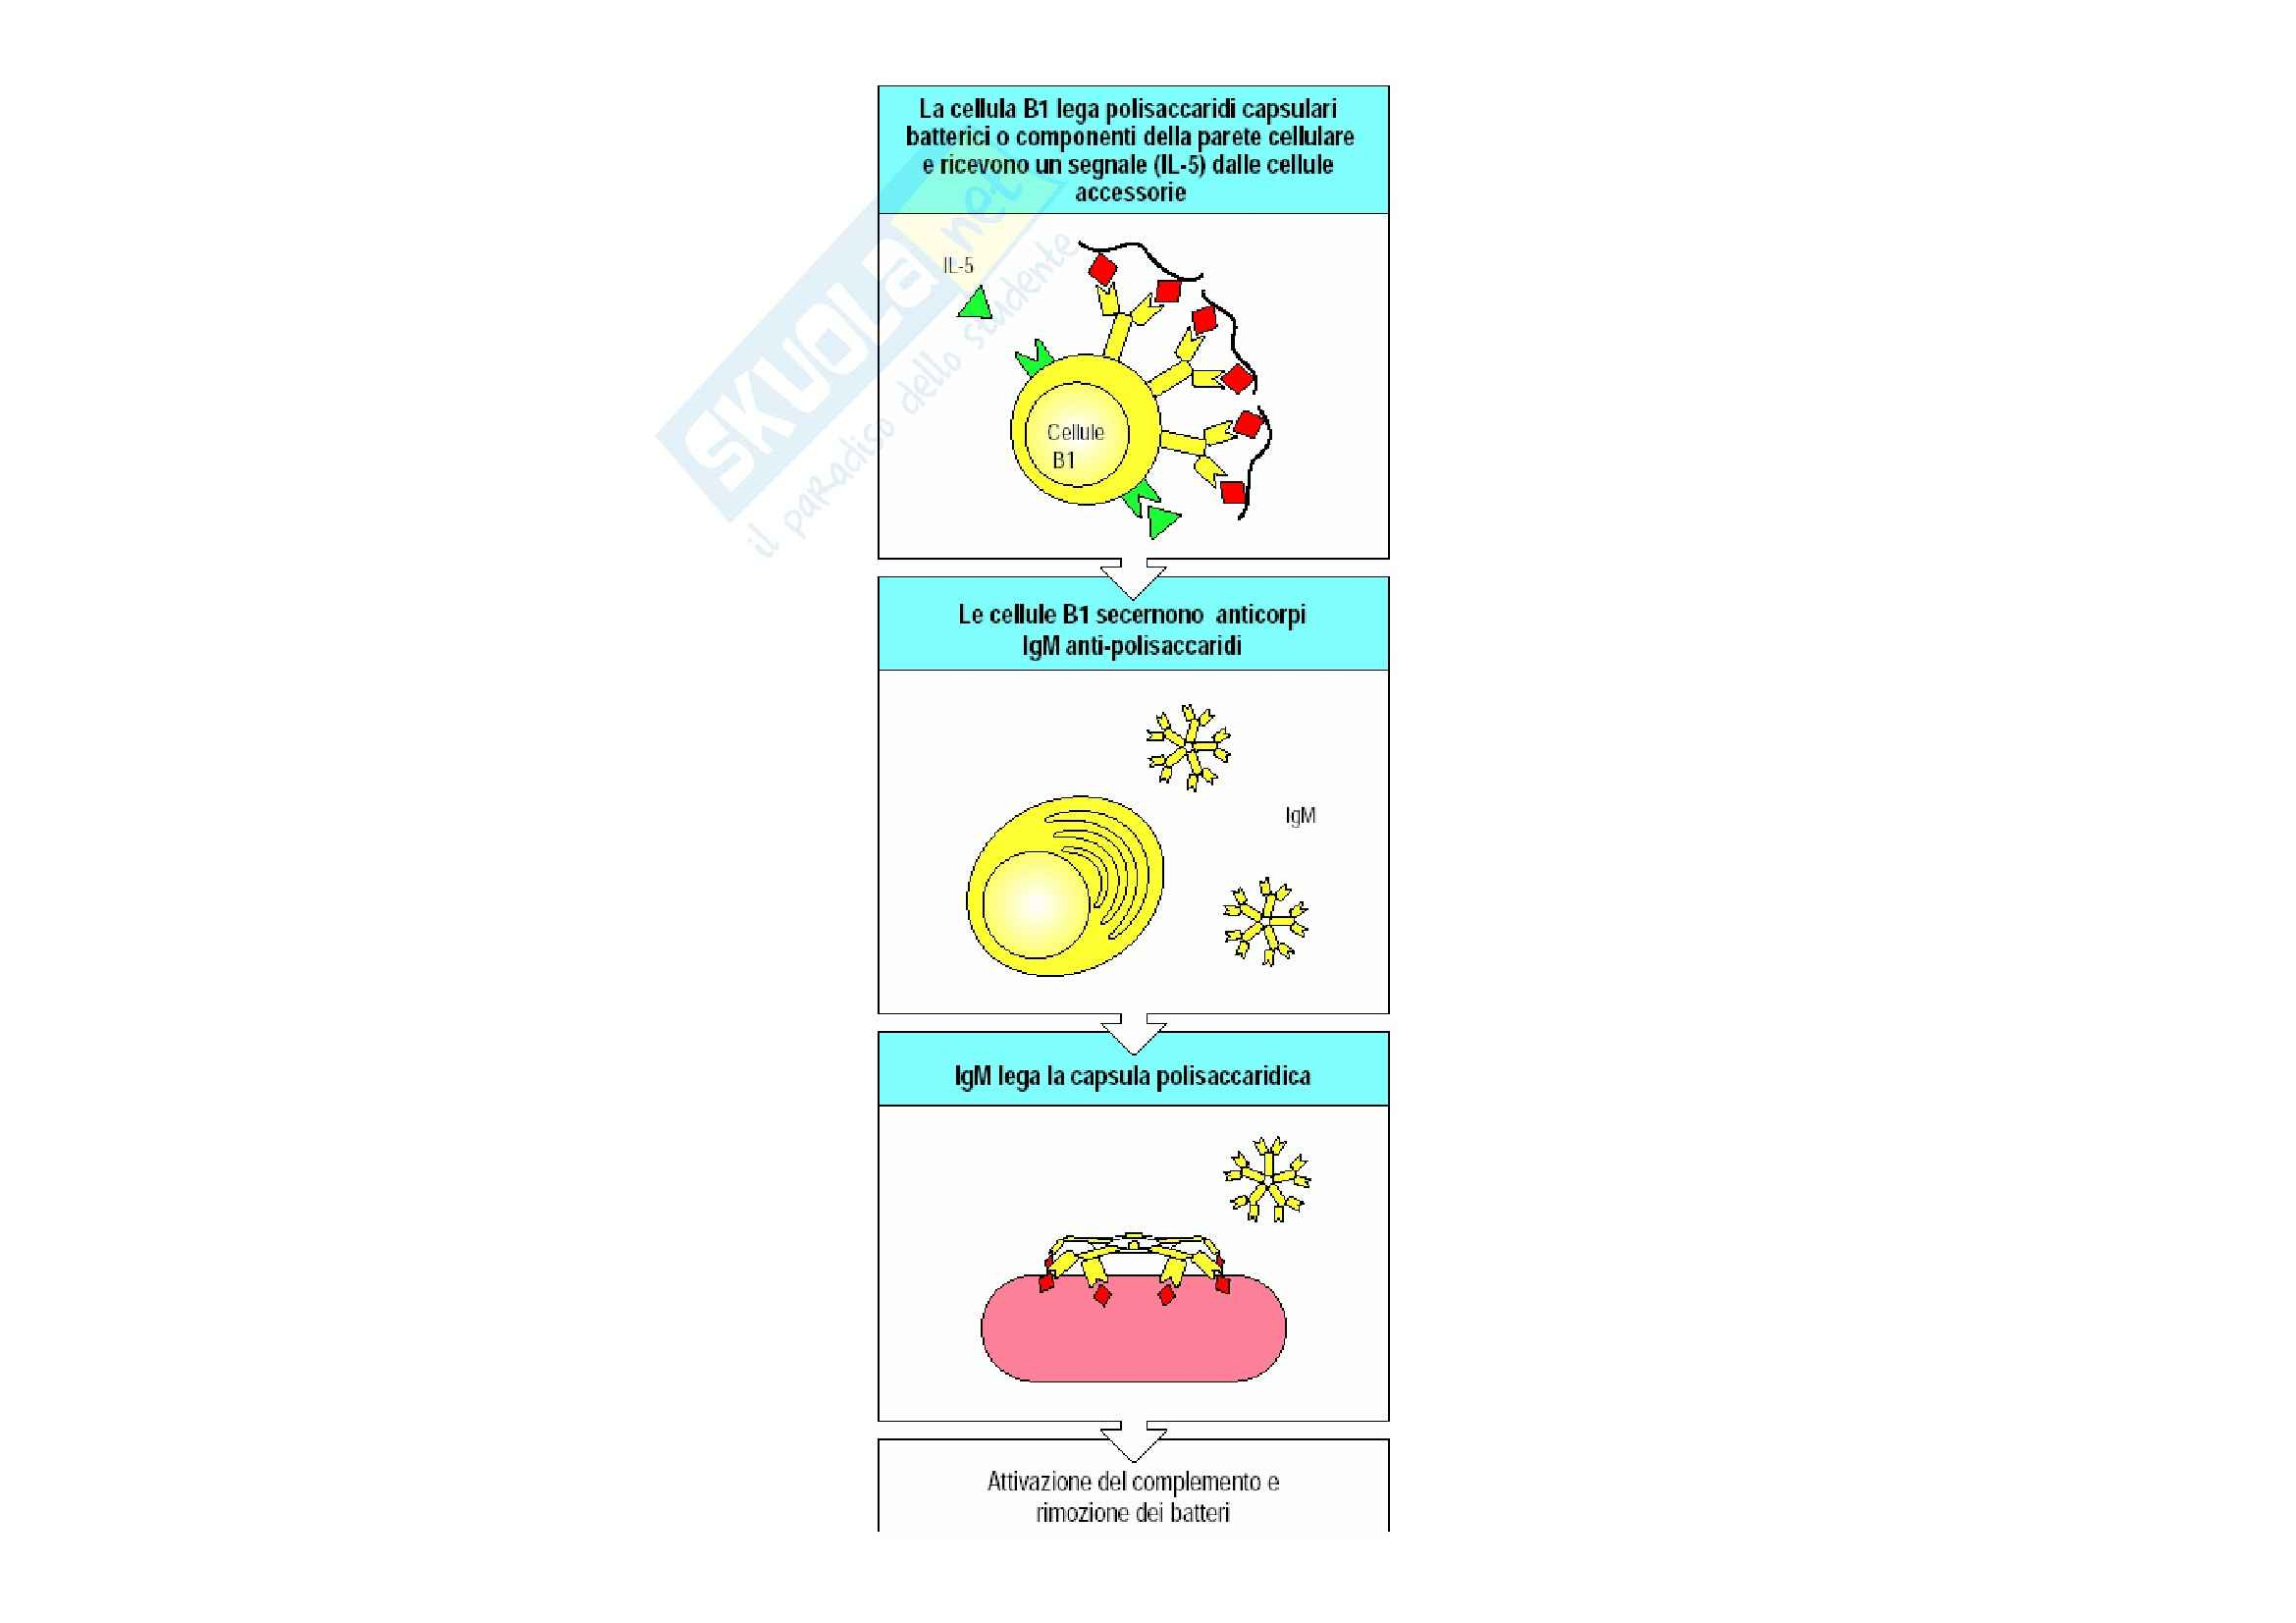 Immunologia - cellule NK Pag. 16